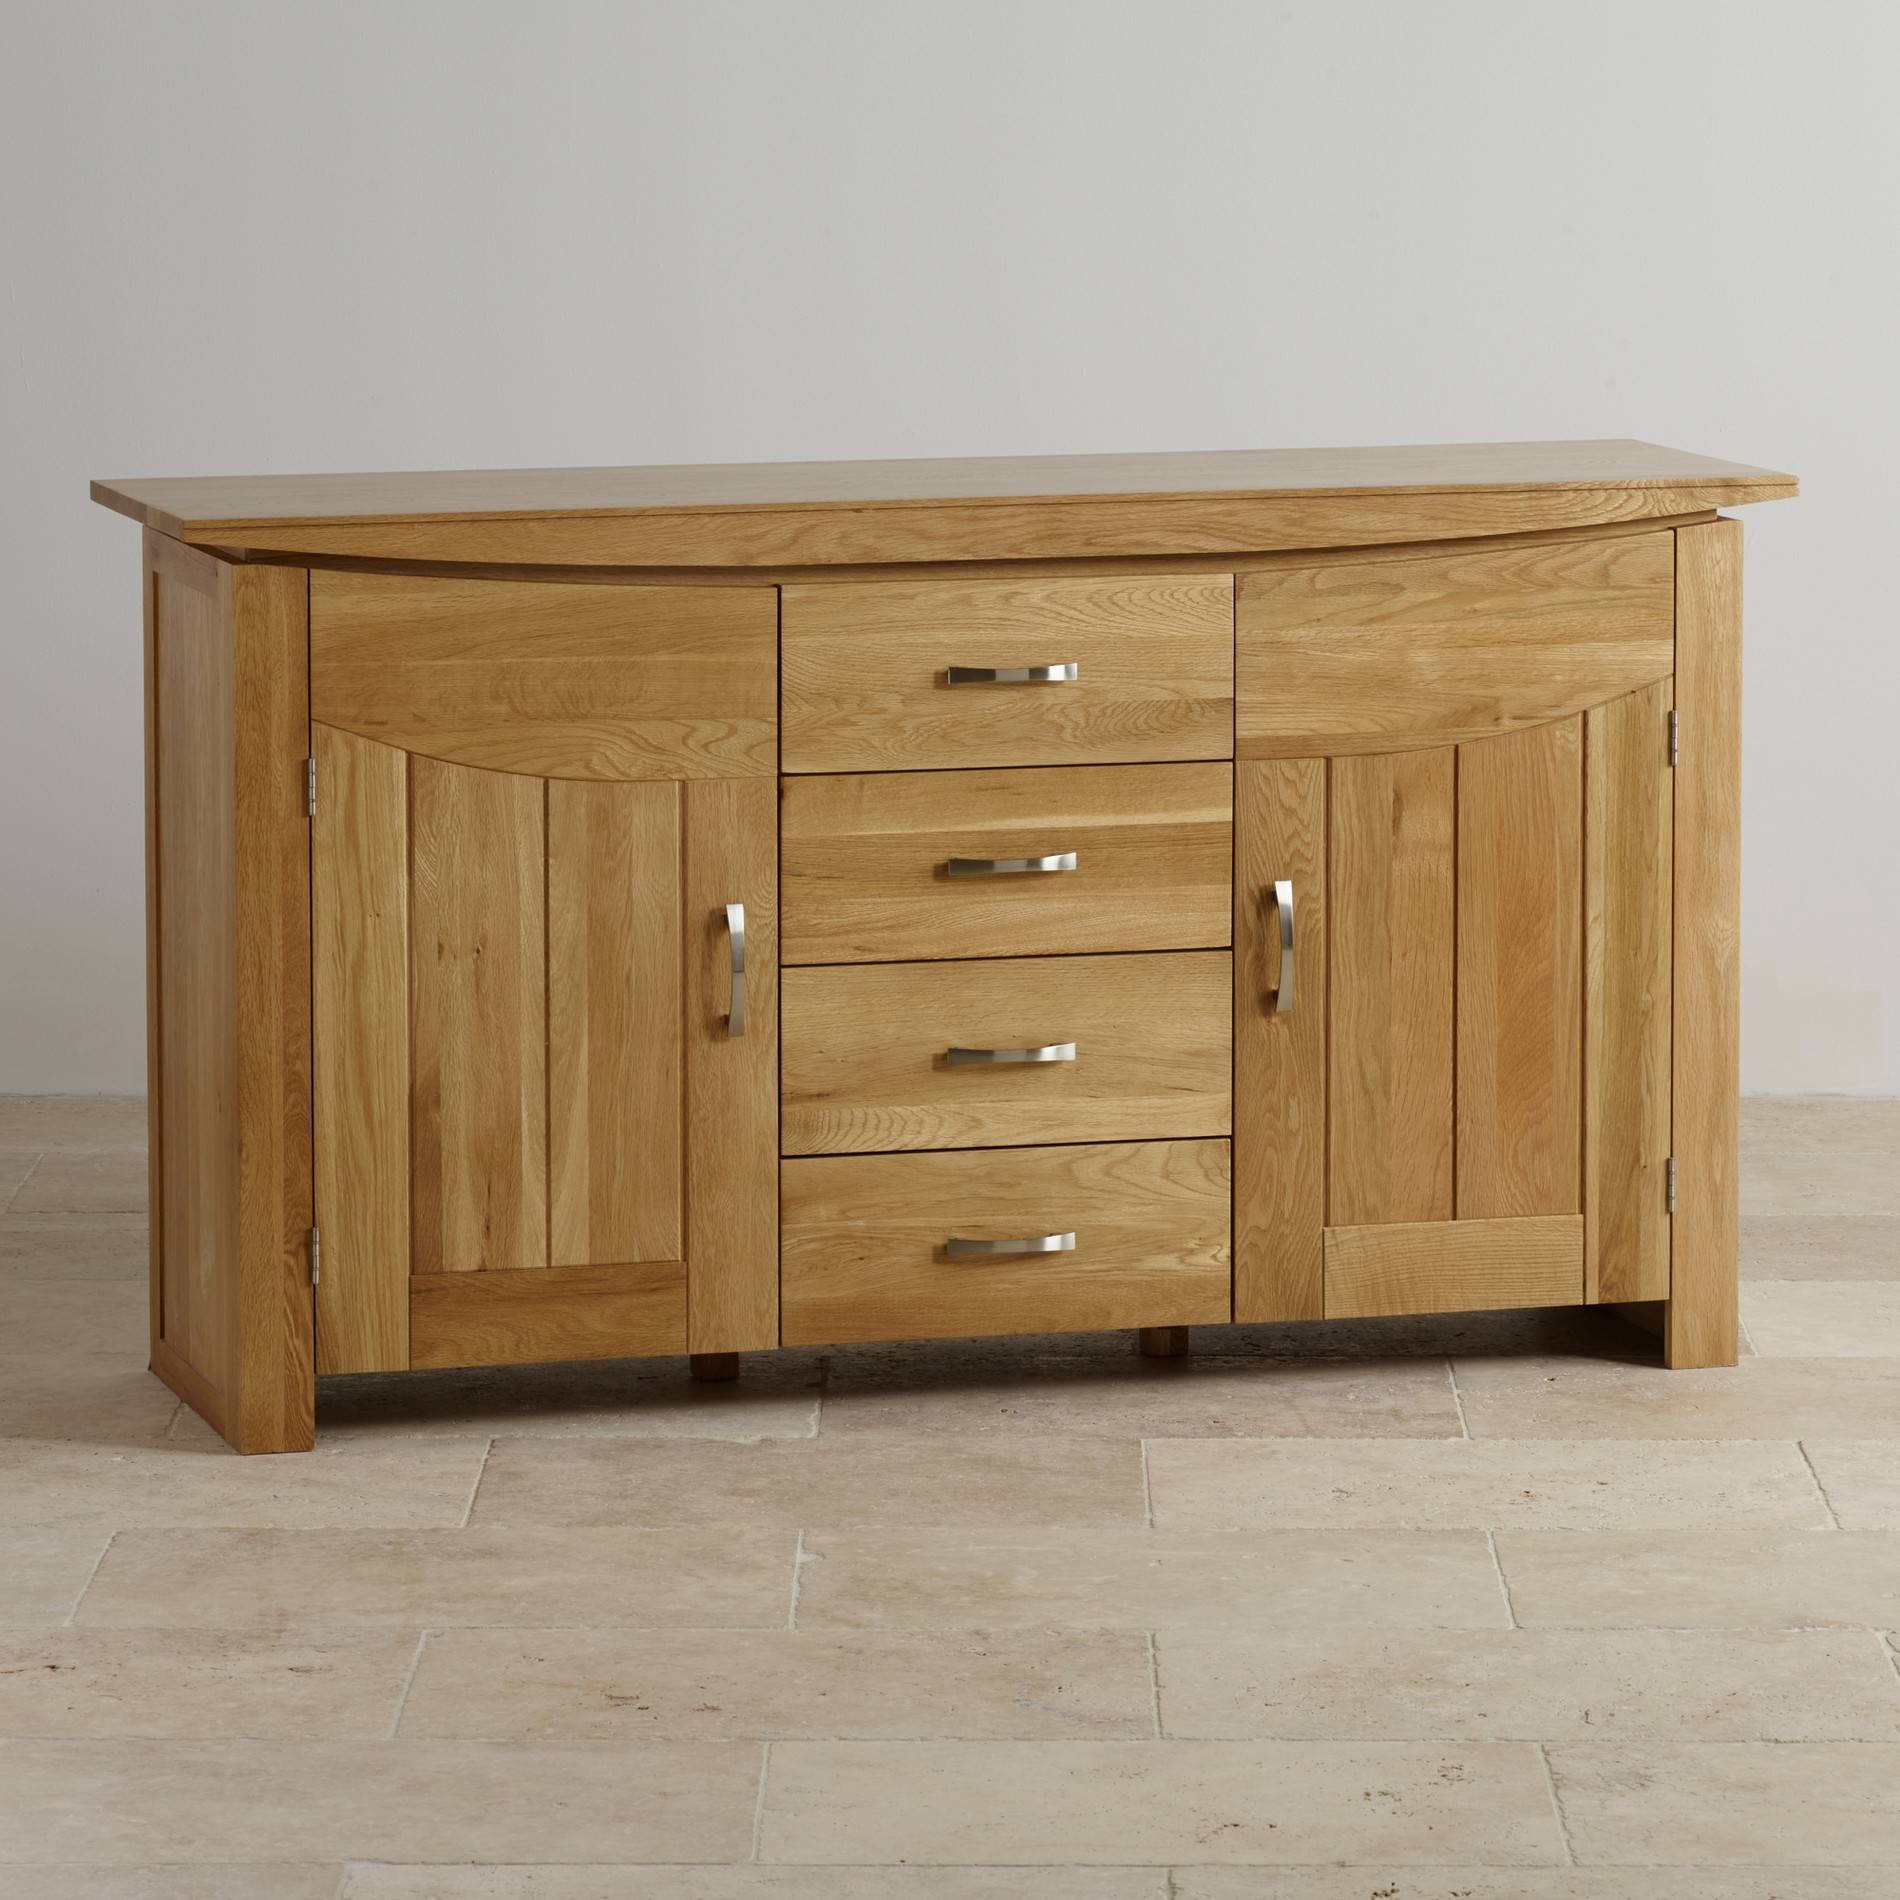 An Oak Furniture Land discount code could save you money on your next order so you could get premium wooden furniture for less. With pieces suitable for every room in the house, fill your home with the highest quality furniture today.